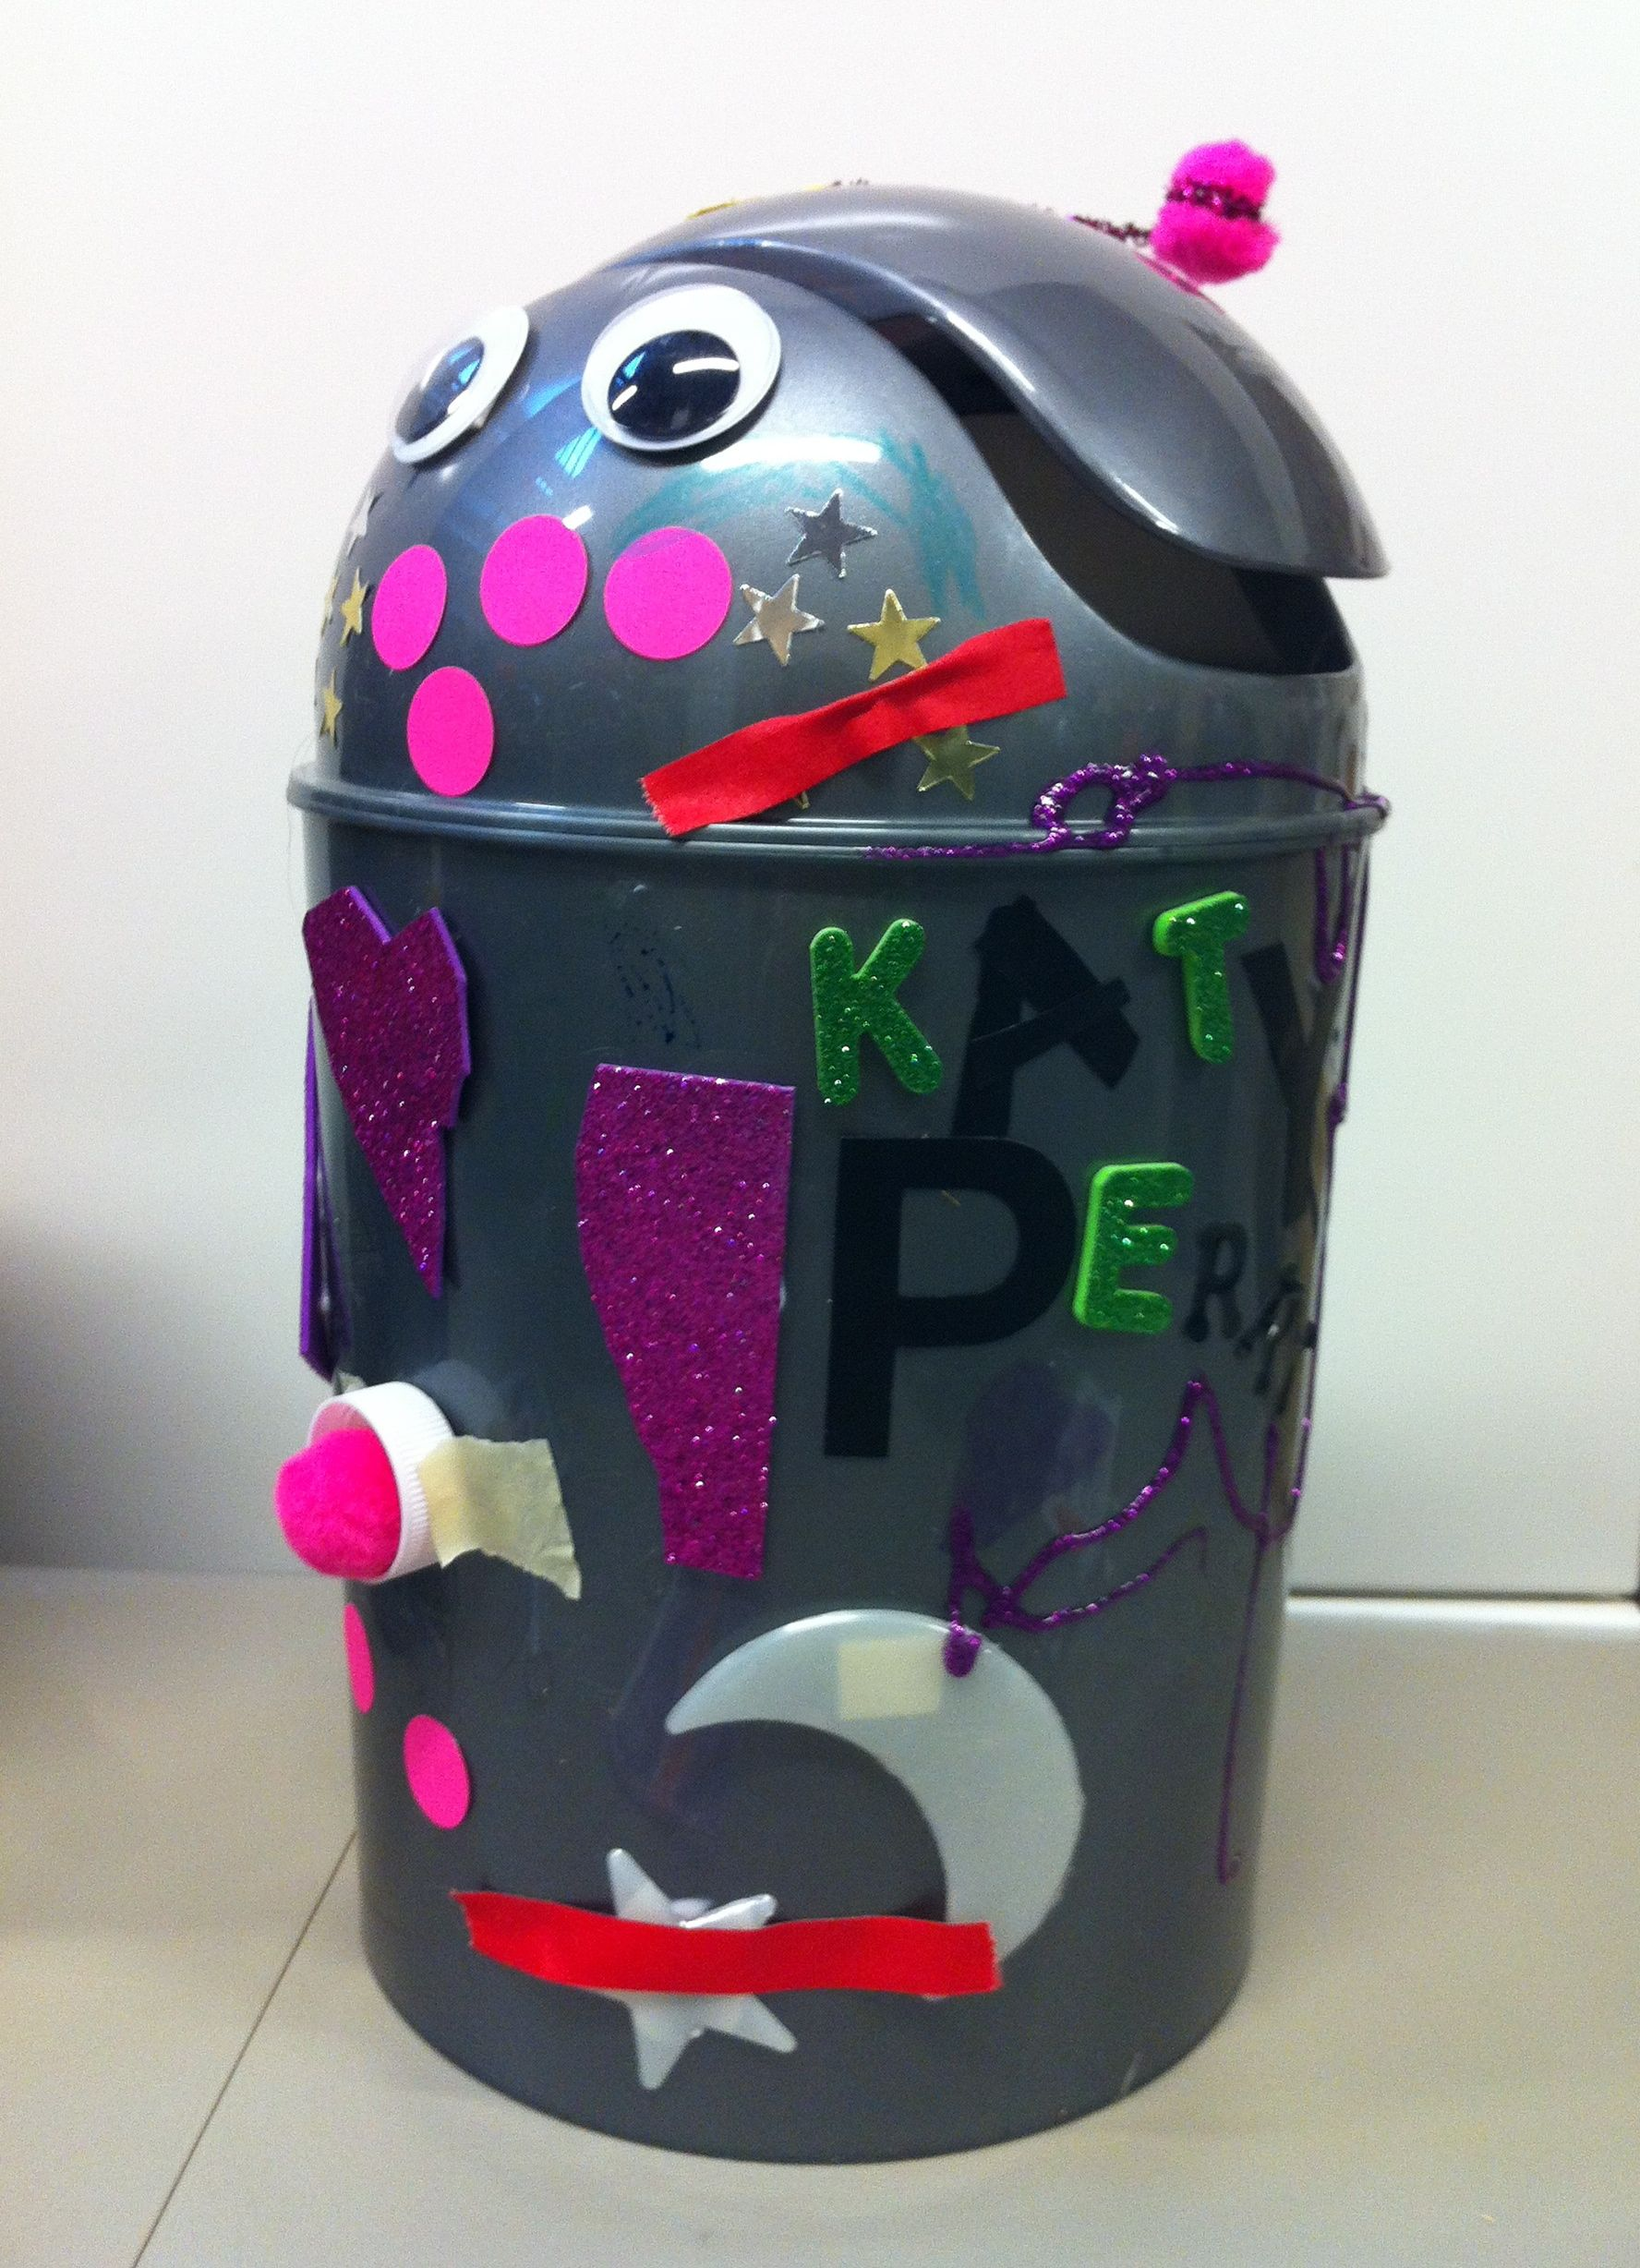 Fun Trash Can Katy Perry Robot Trash Can Robots Crafty Canning Fun Crafts